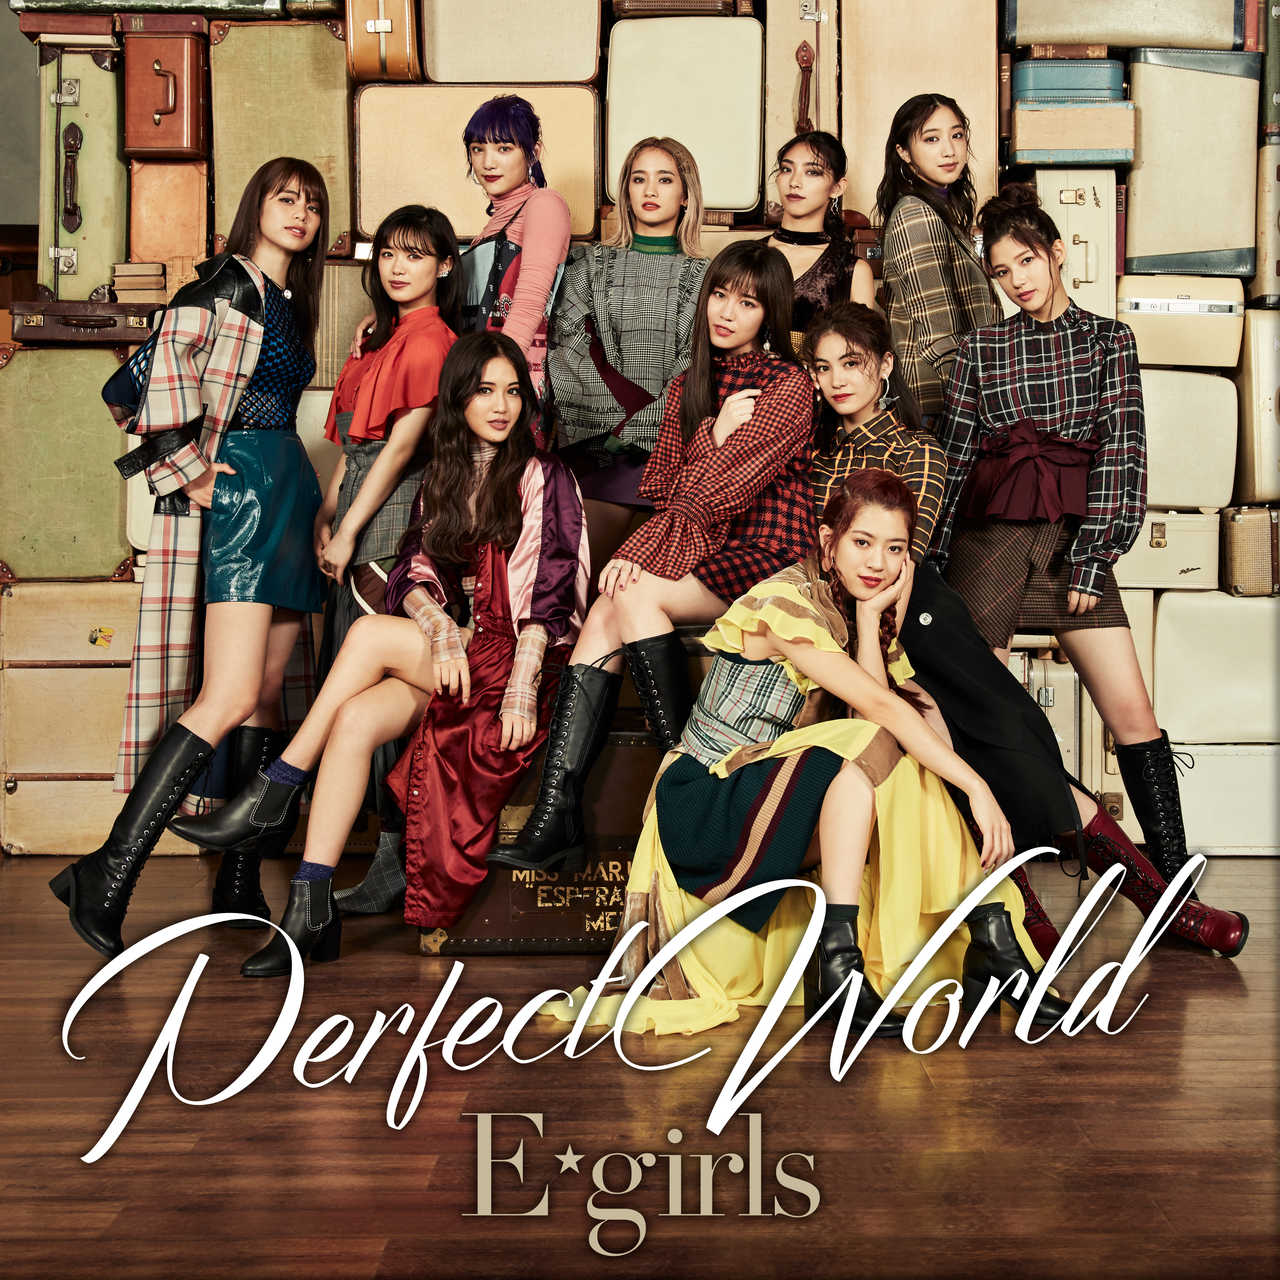 配信楽曲「Perfect World」